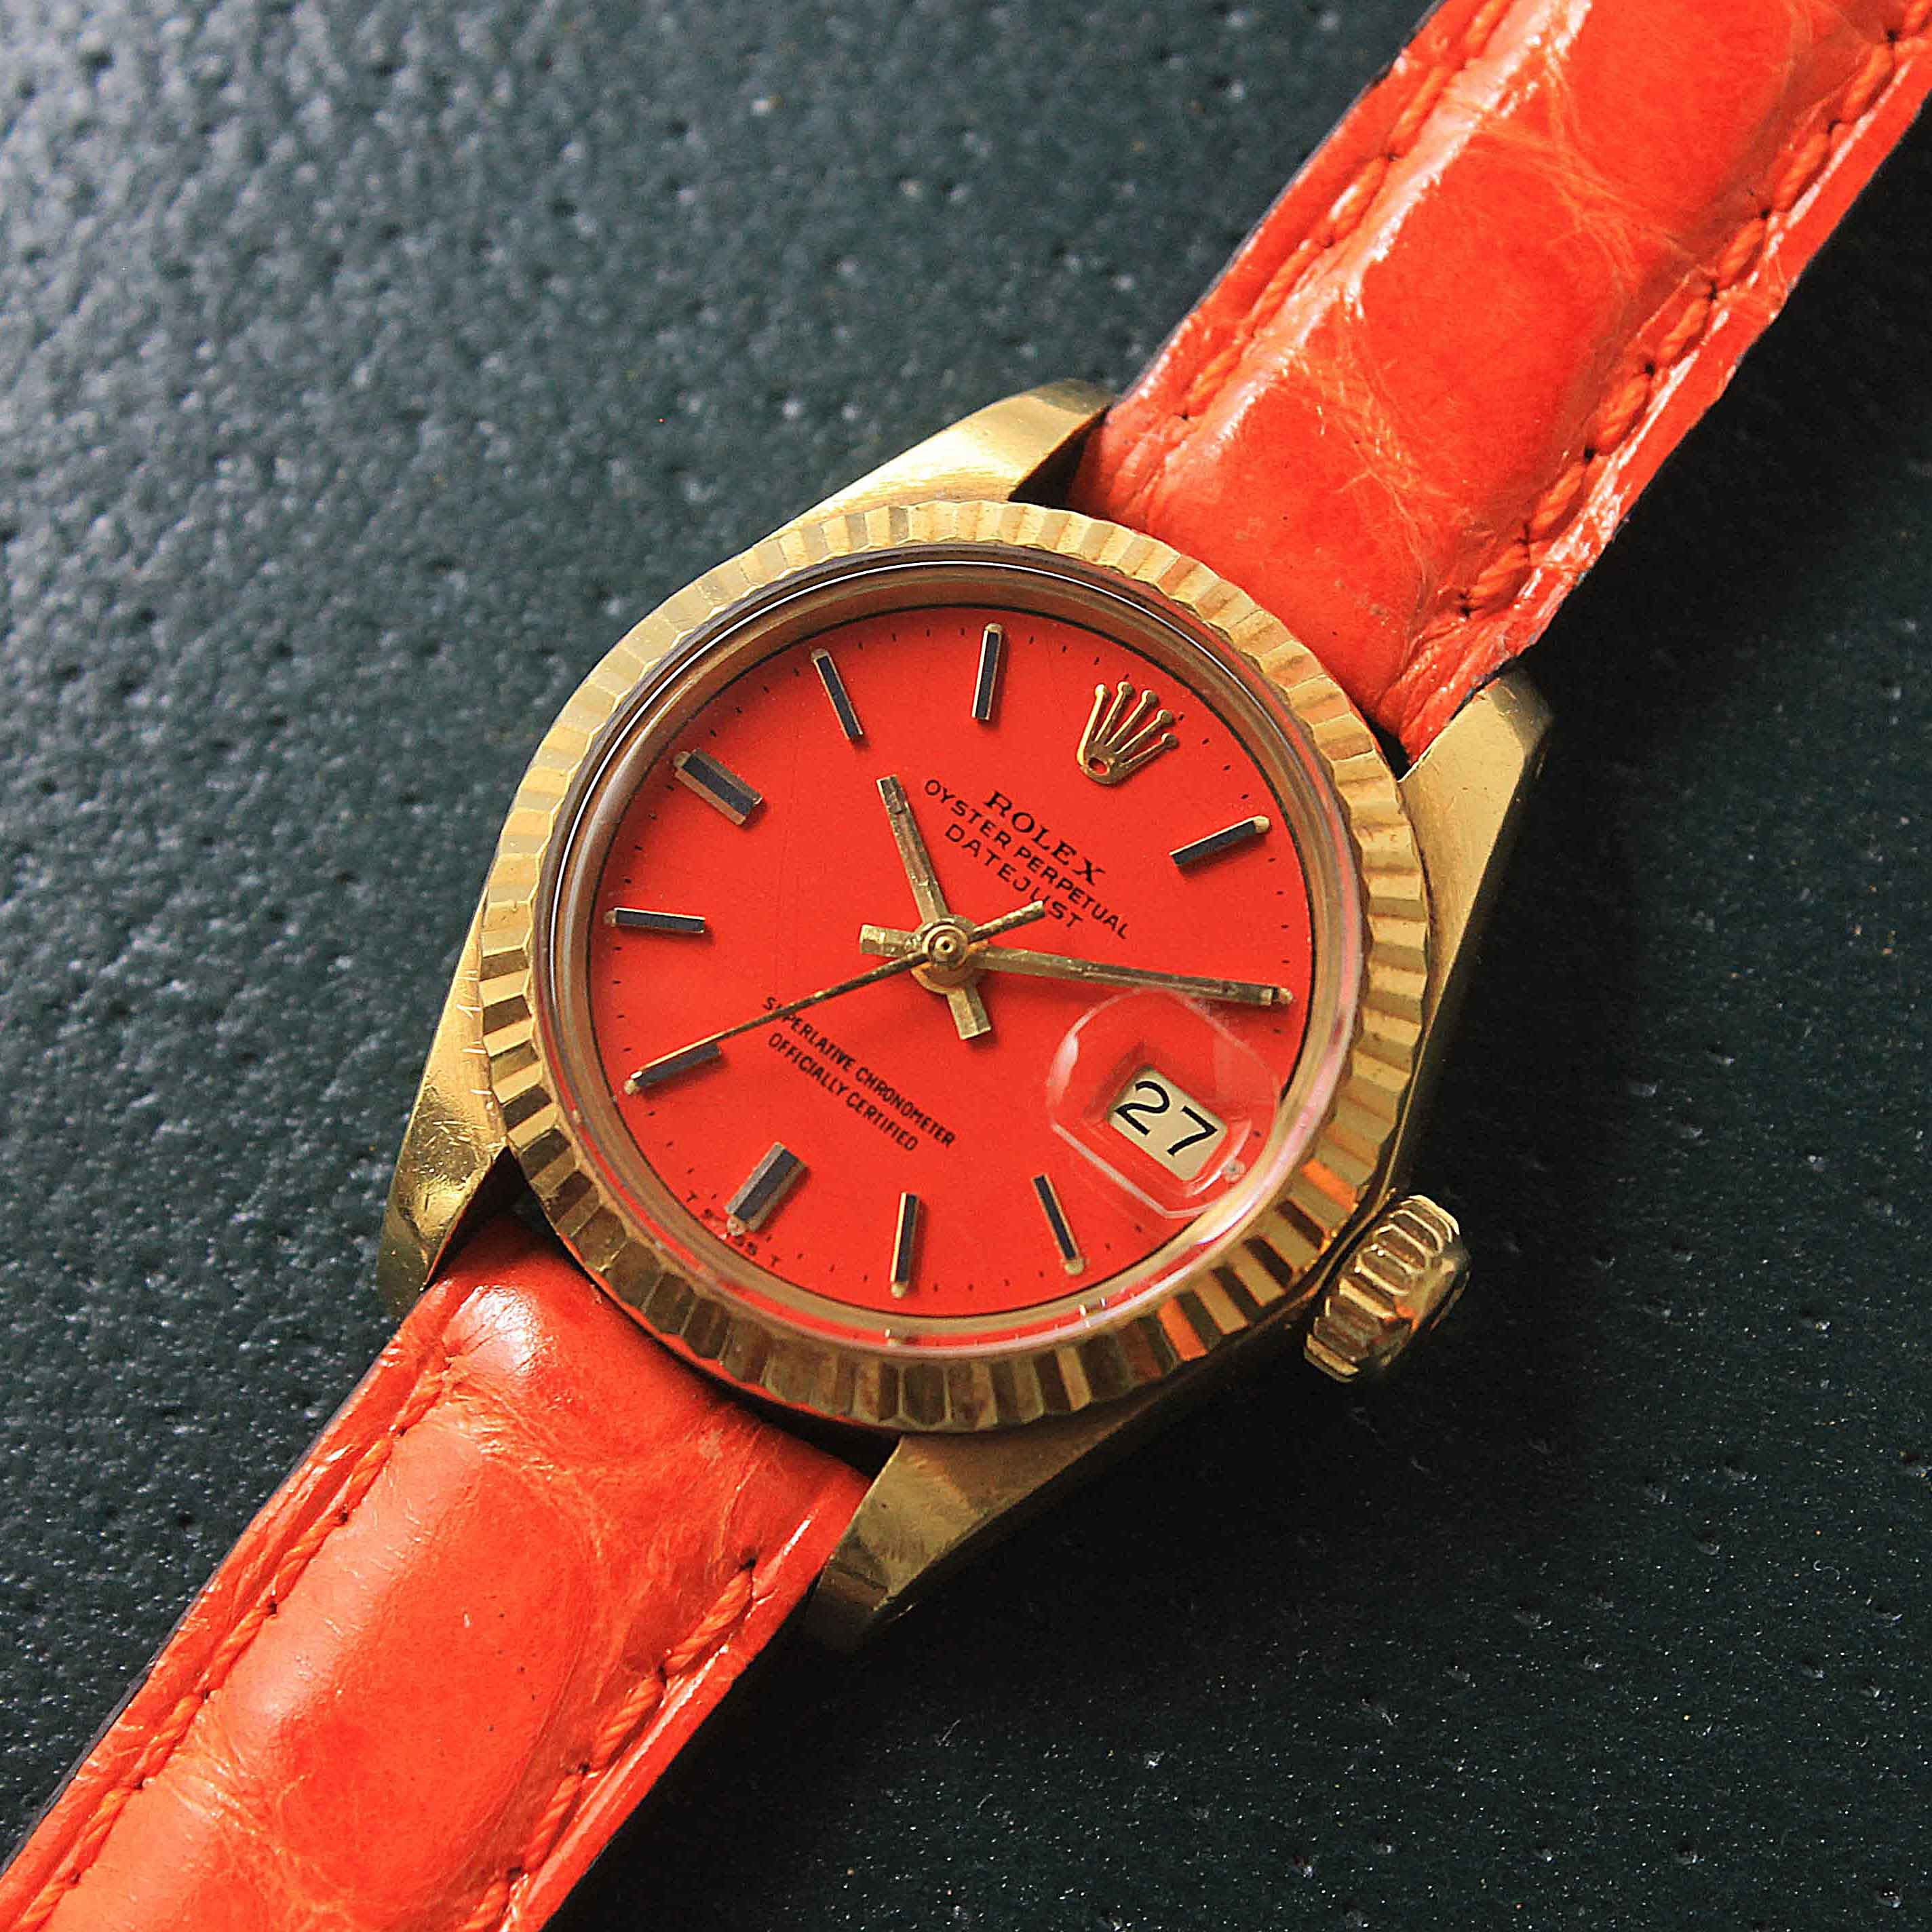 The Watch I Would Have Liked for Valentine's (And the One I Would Have Given)